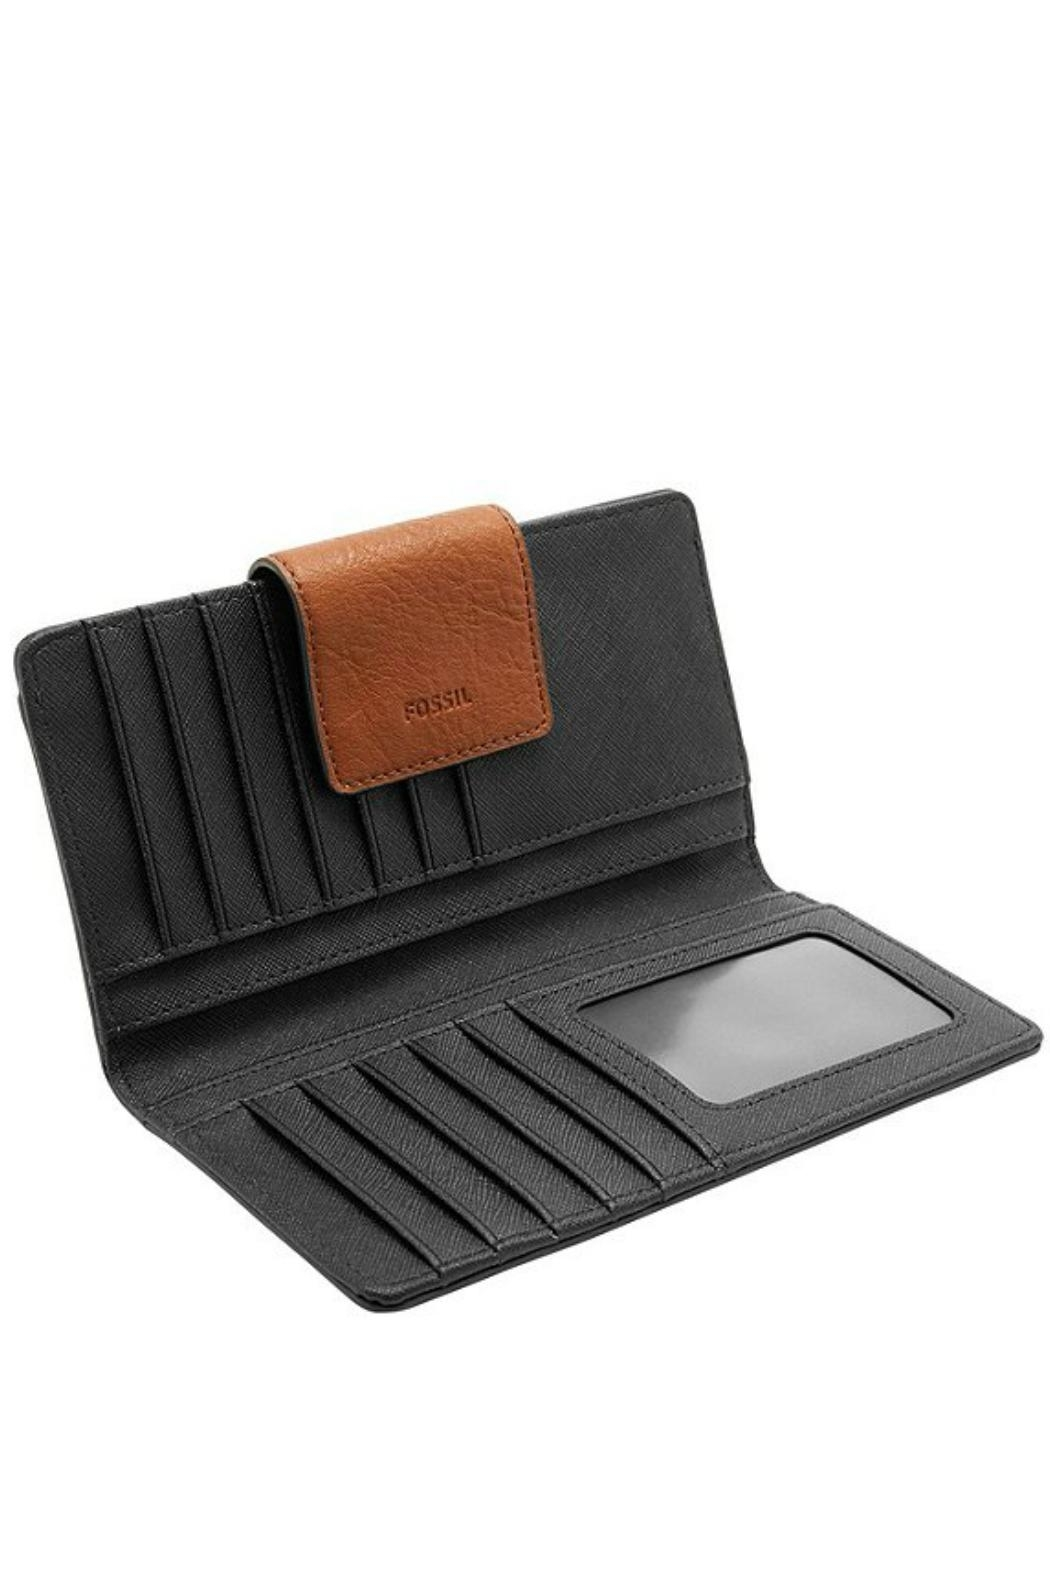 Fossil Leather Emma Wallet - Side Cropped Image